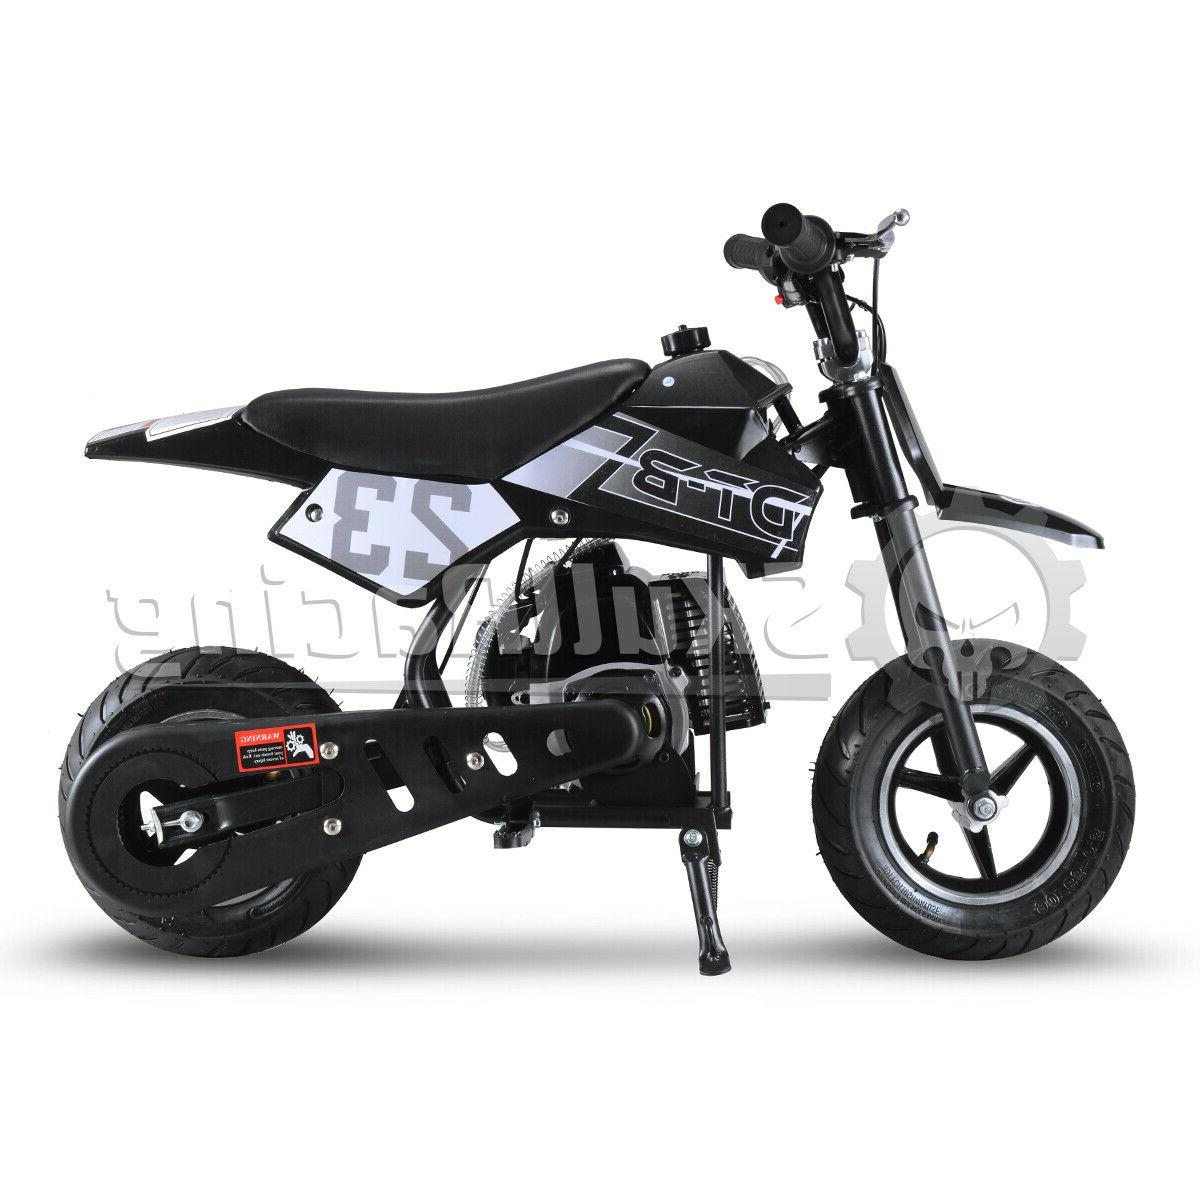 SkullRacing Mini Pocket Dirt Bike Motorcycle